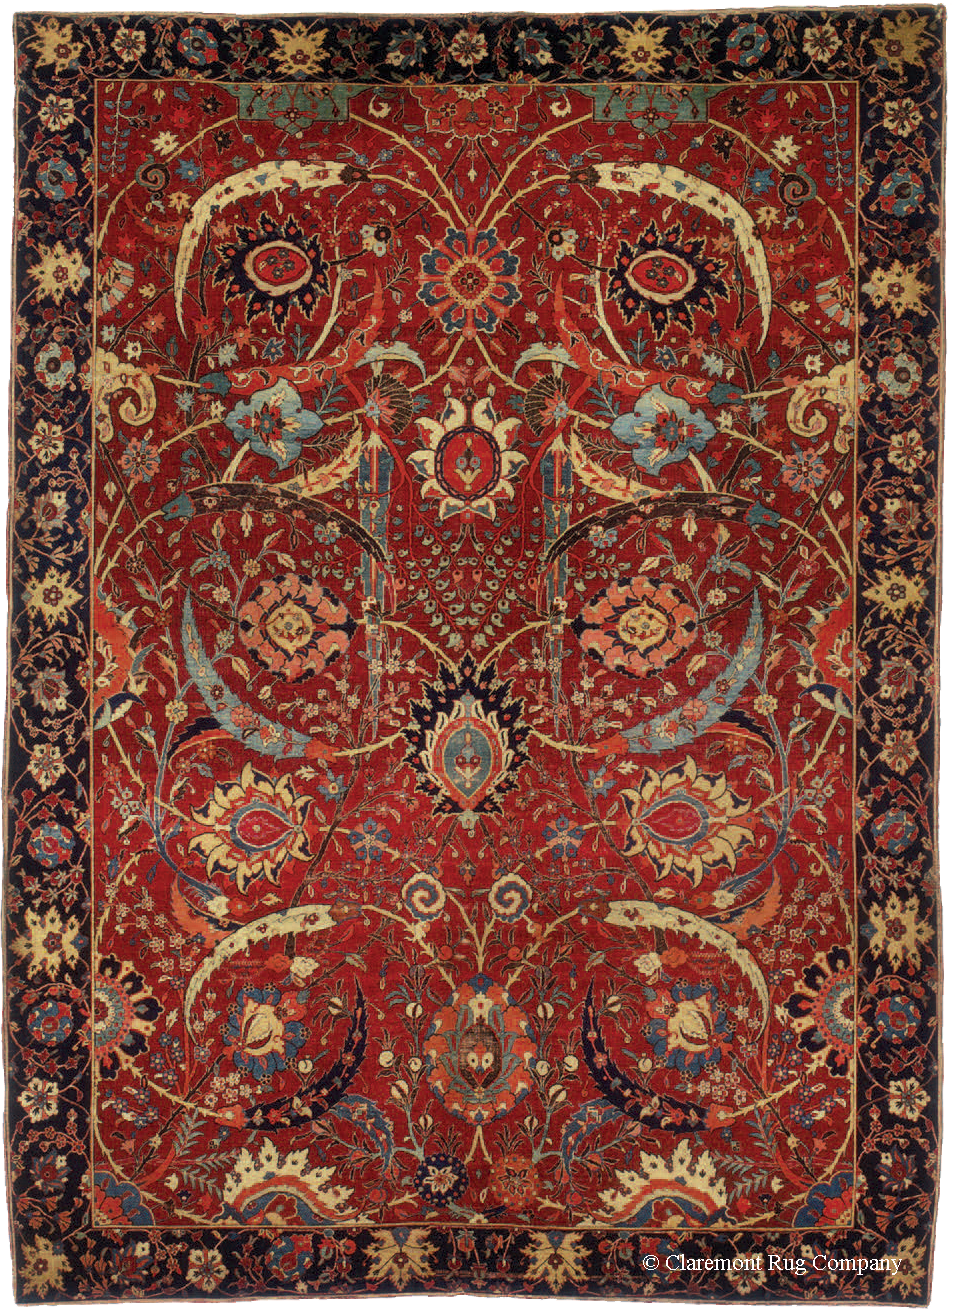 17th Century Persian Sickle Leaf Kirman Carpet Sold At Sothebyu0027s In June Of  2013 For $33.8